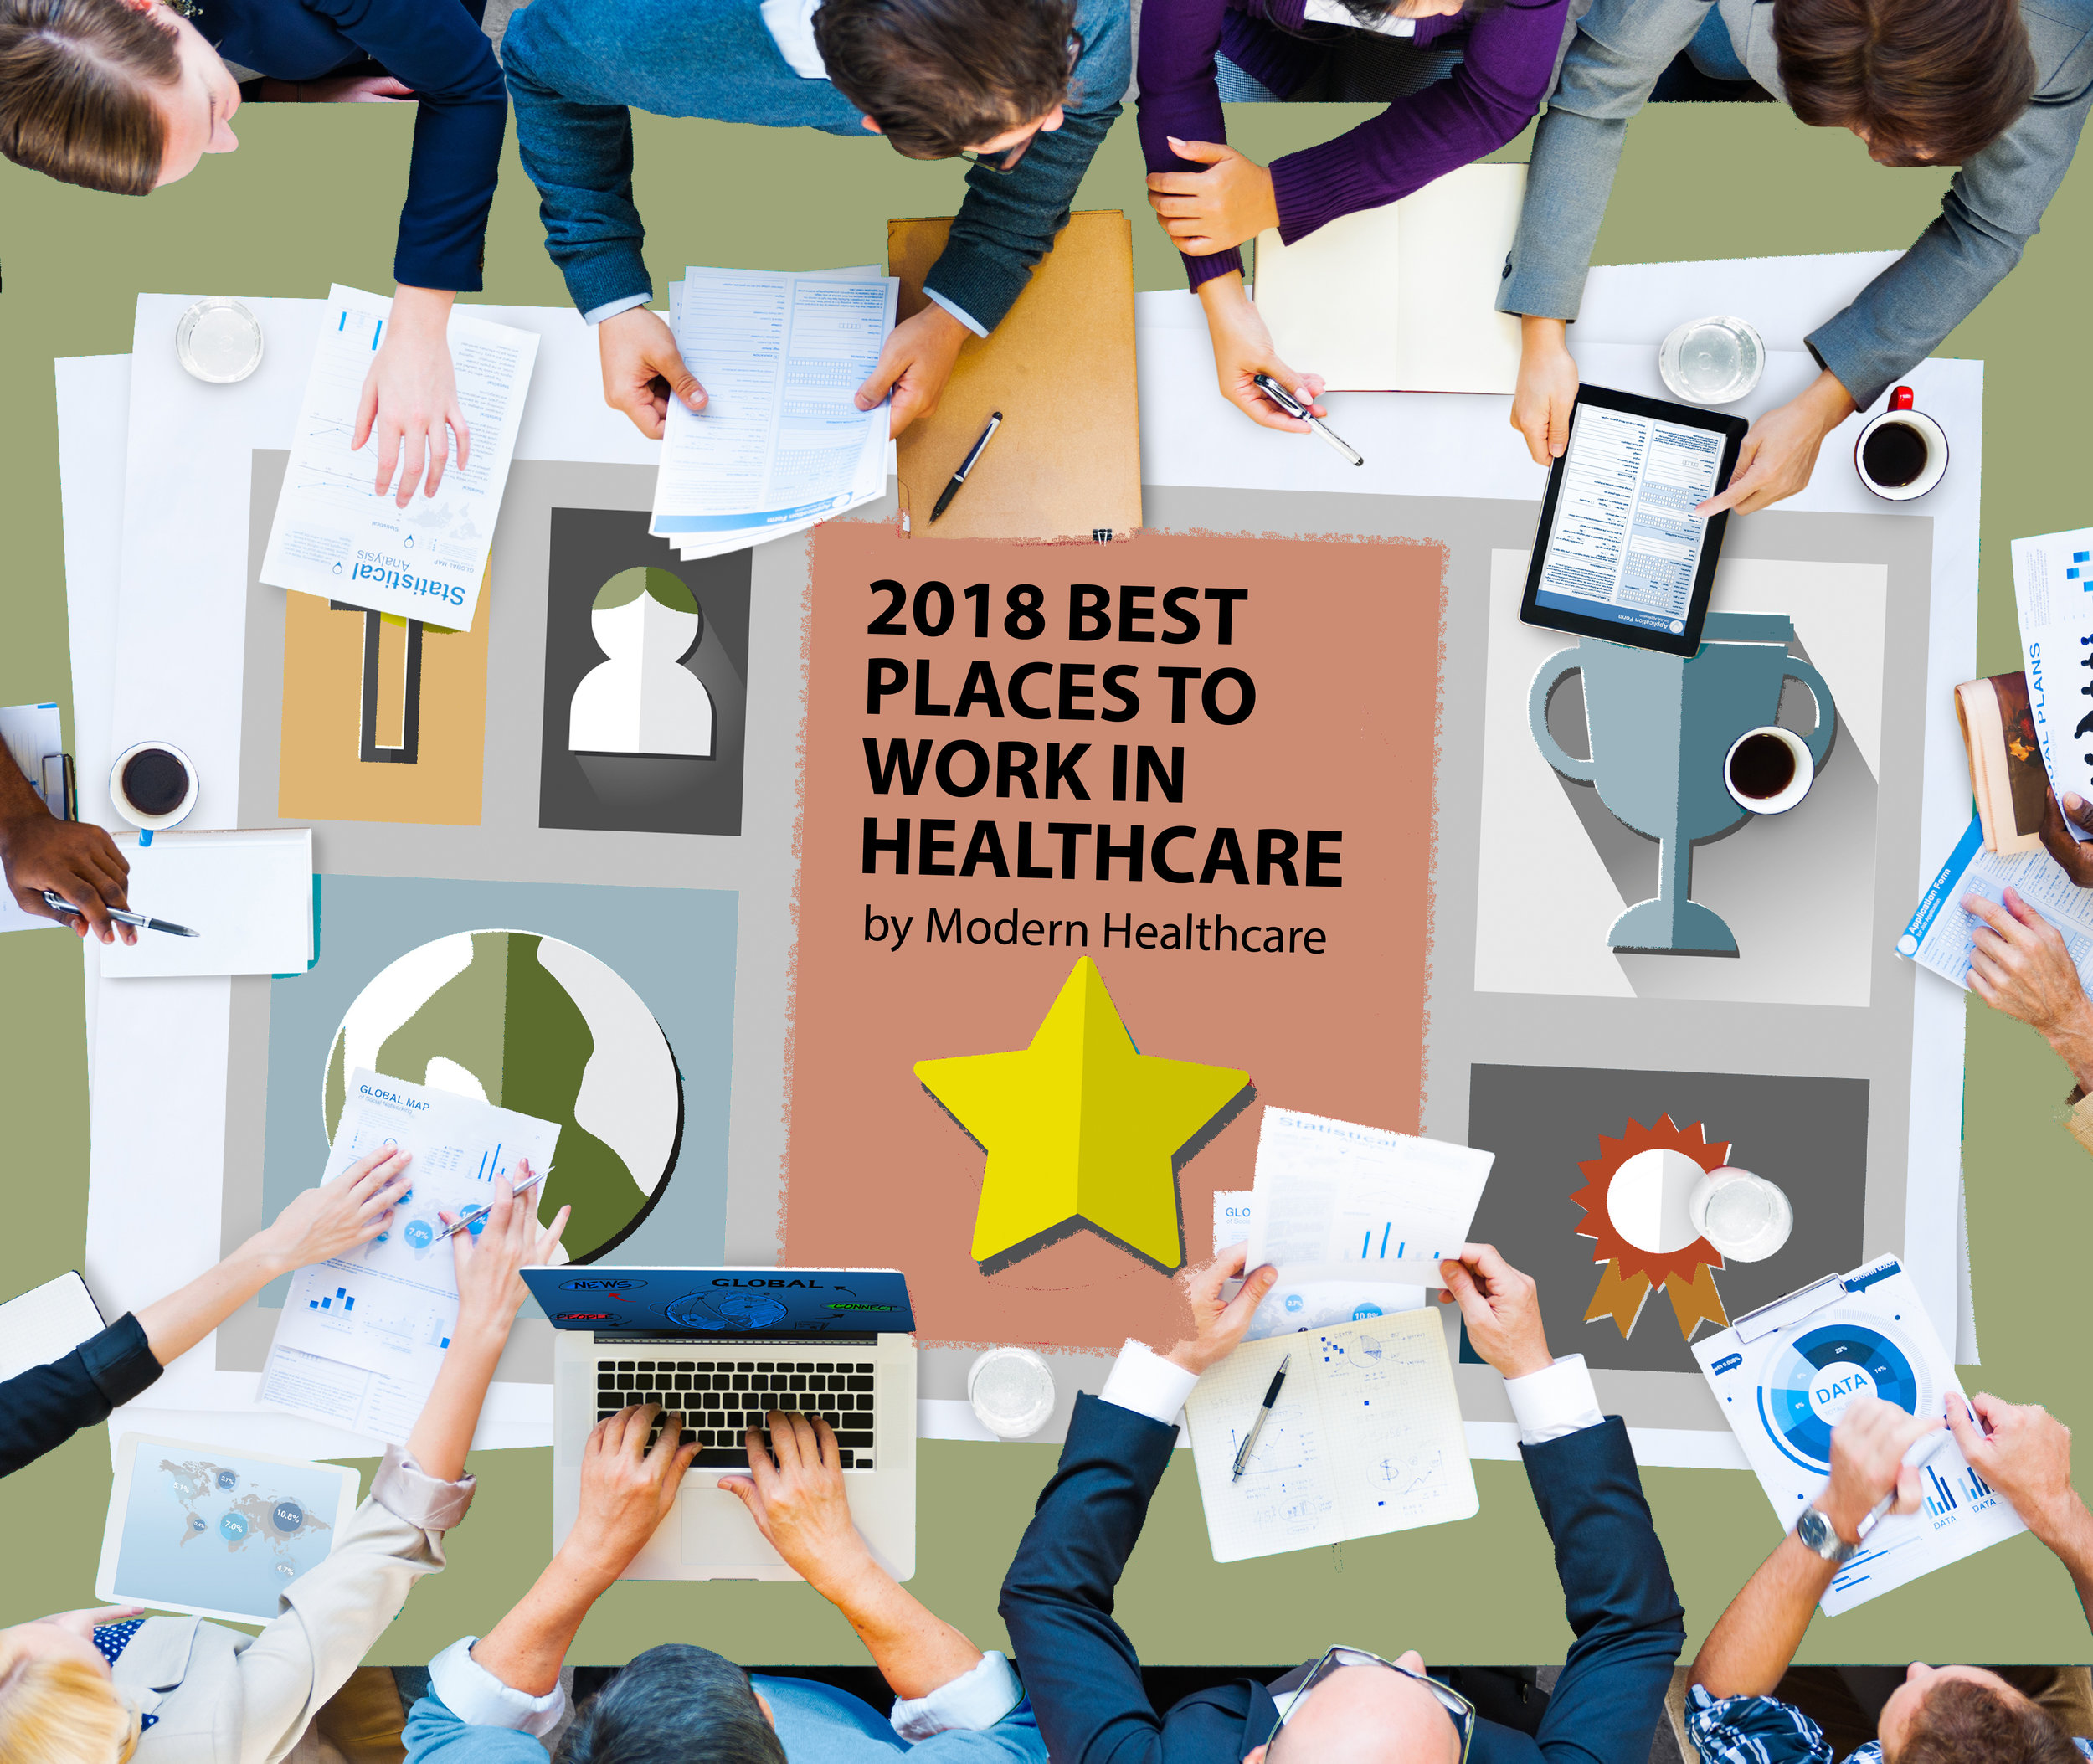 best-places-to-work-in-healthcare-2018